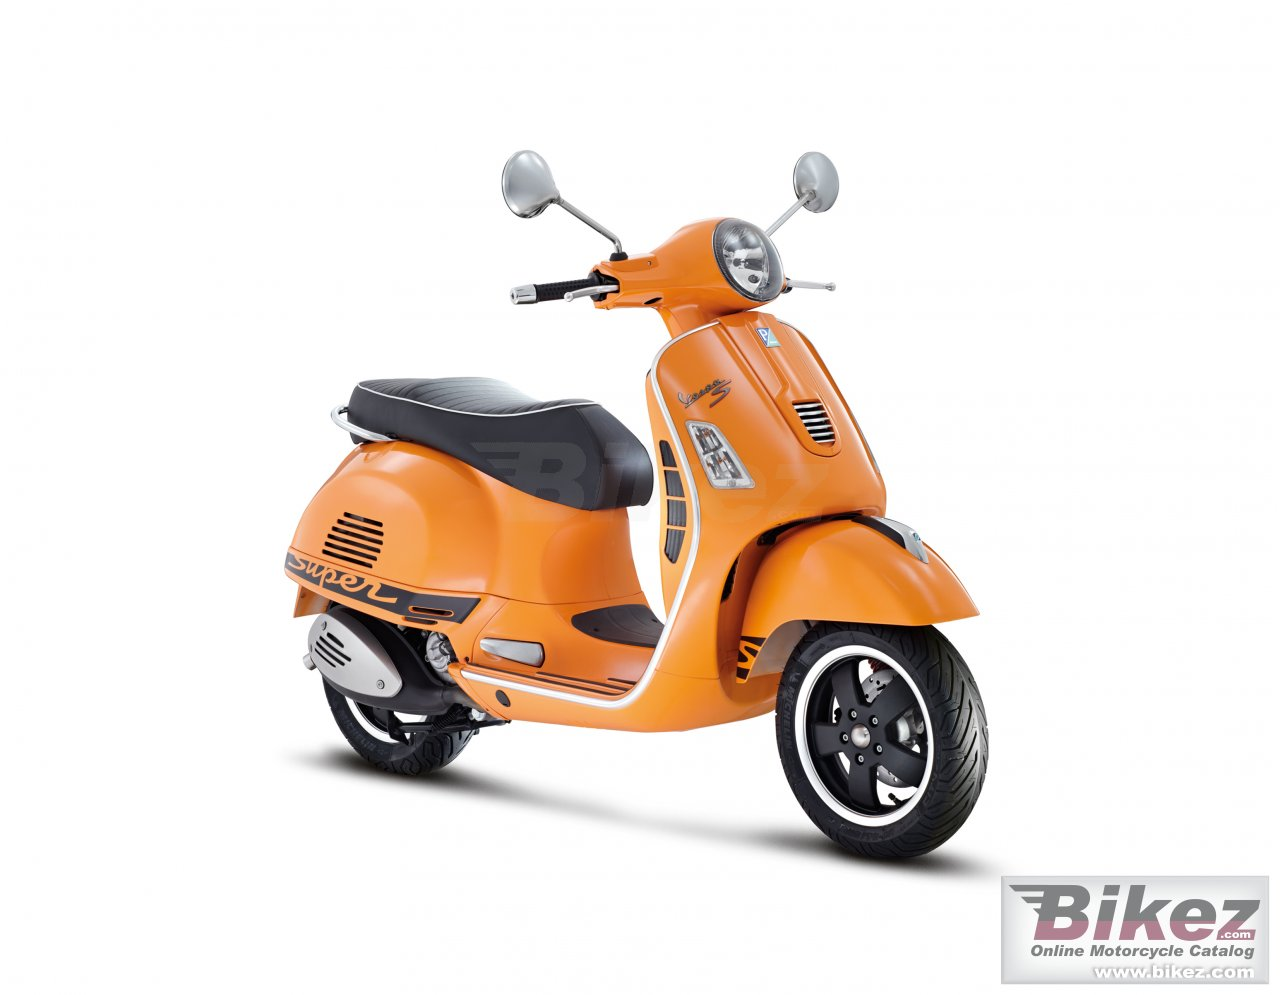 Big Vespa gts 300 super picture and wallpaper from Bikez.com